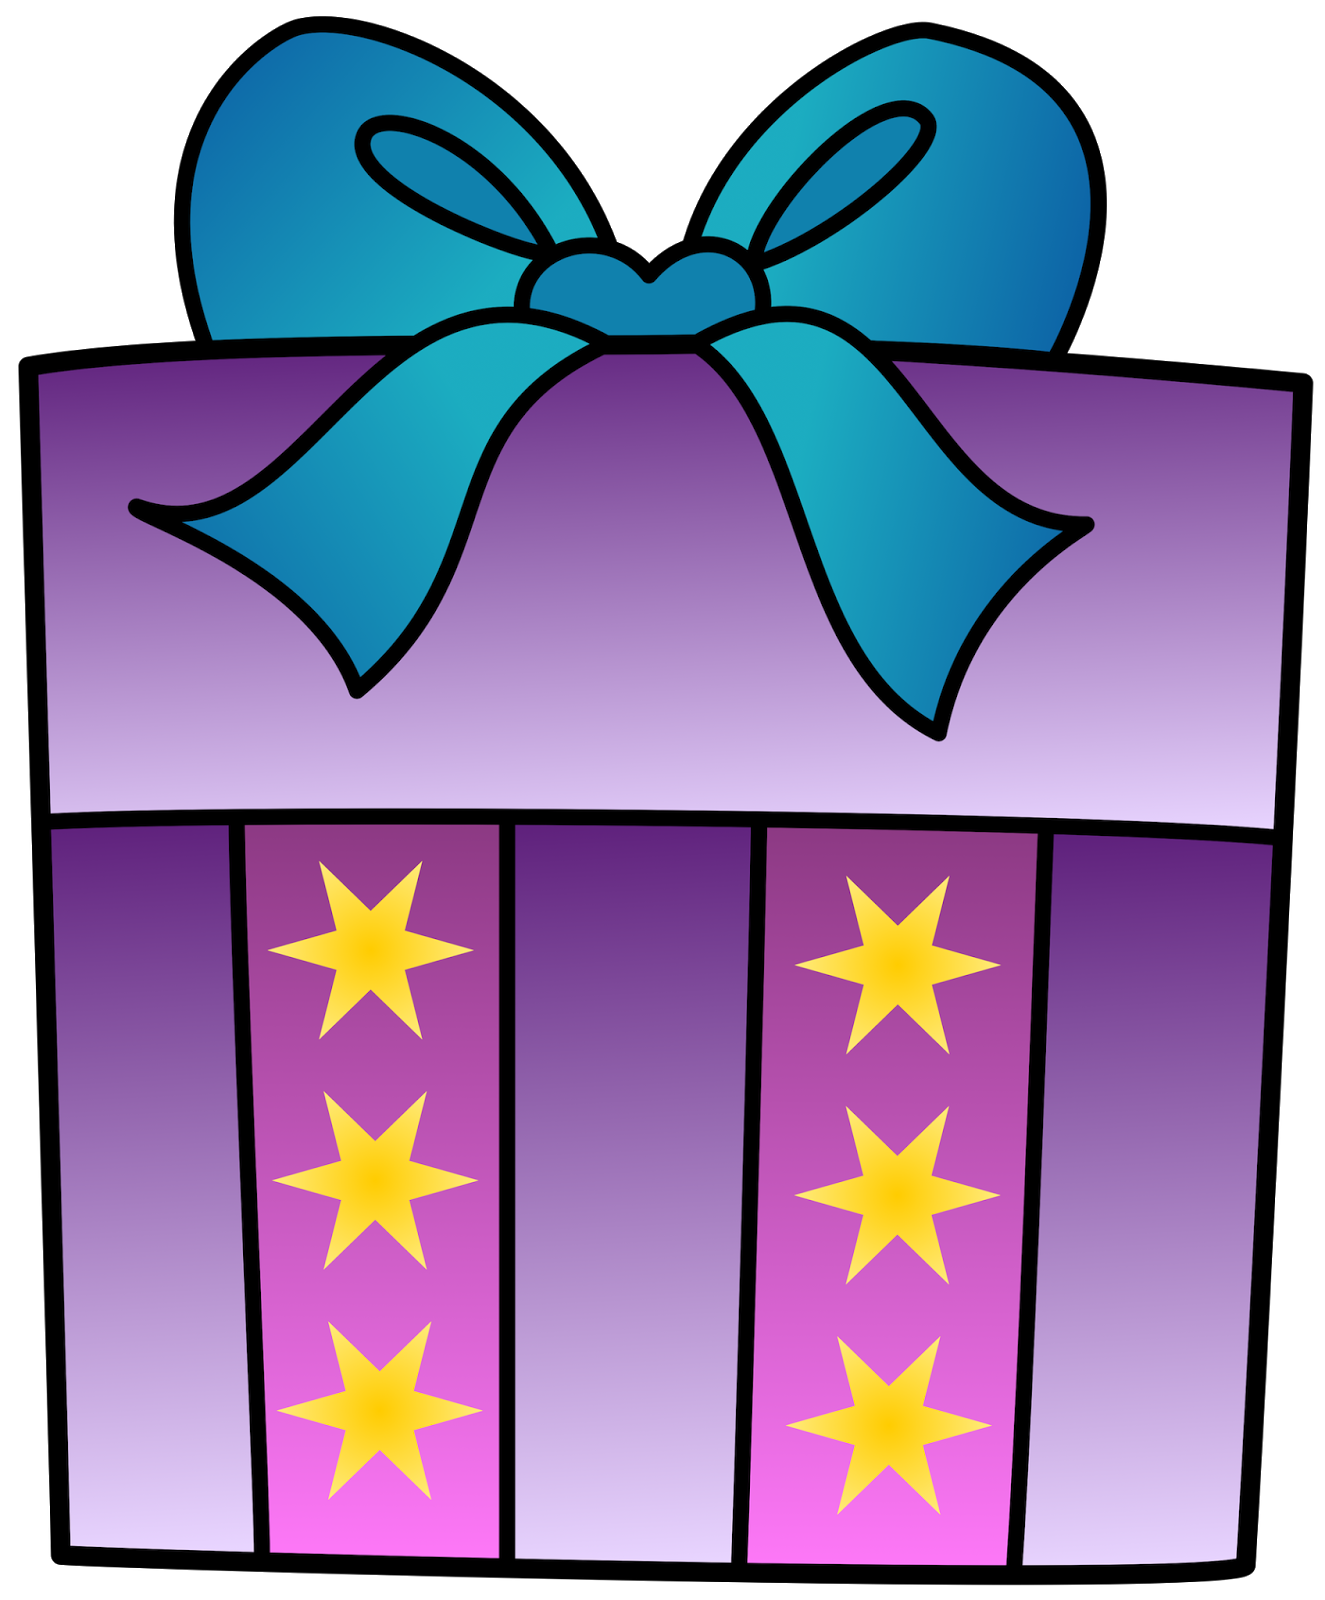 Free Birthday Gift Cliparts, Download Free Clip Art, Free.